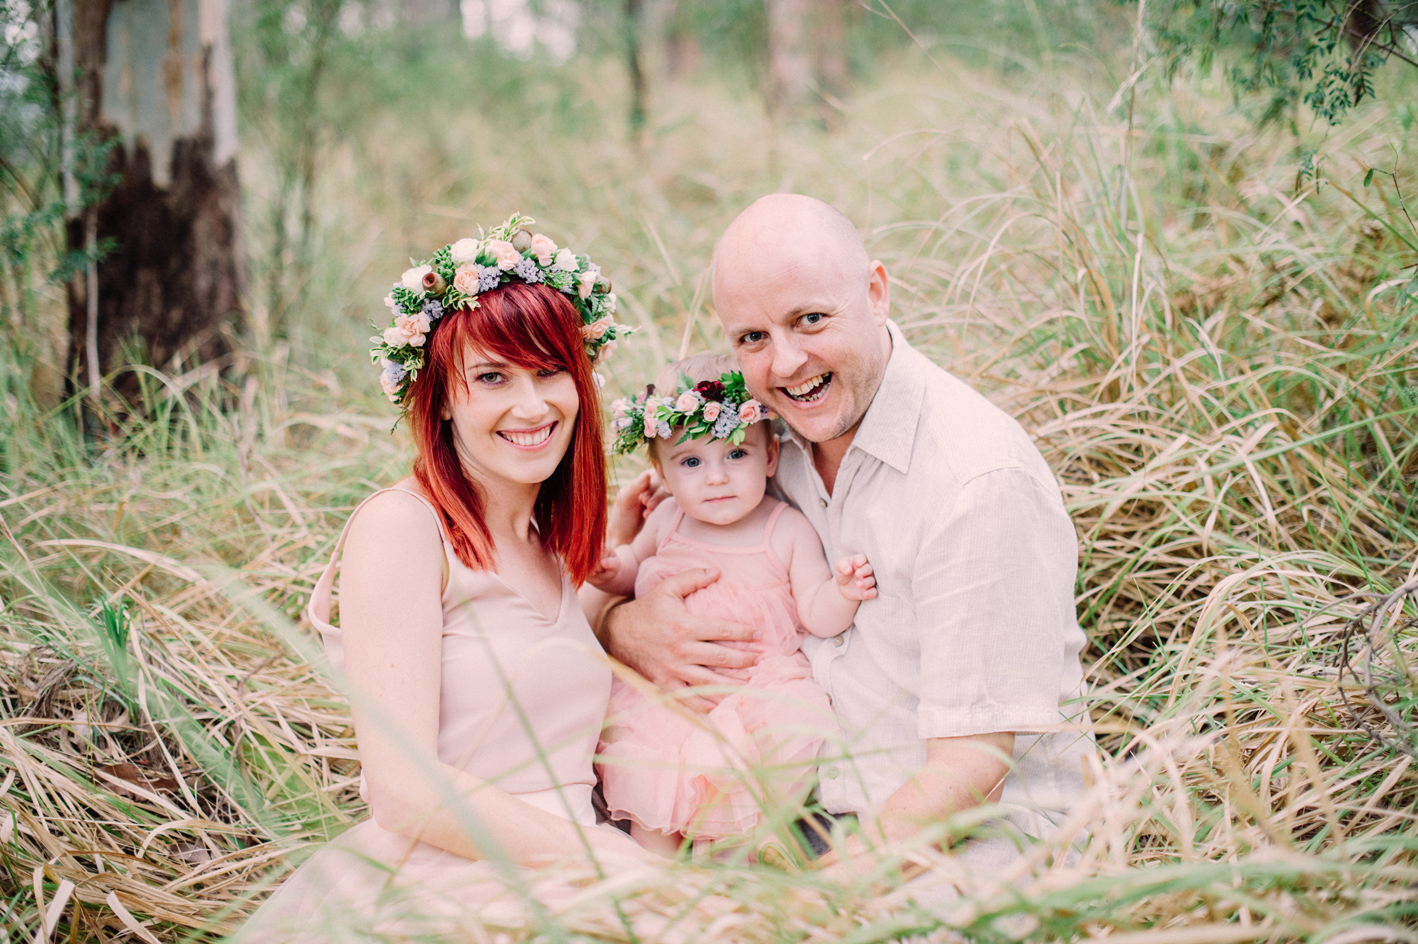 026-family-photos-crown-of-eden-mount-tamborine-sophie-baker-photography